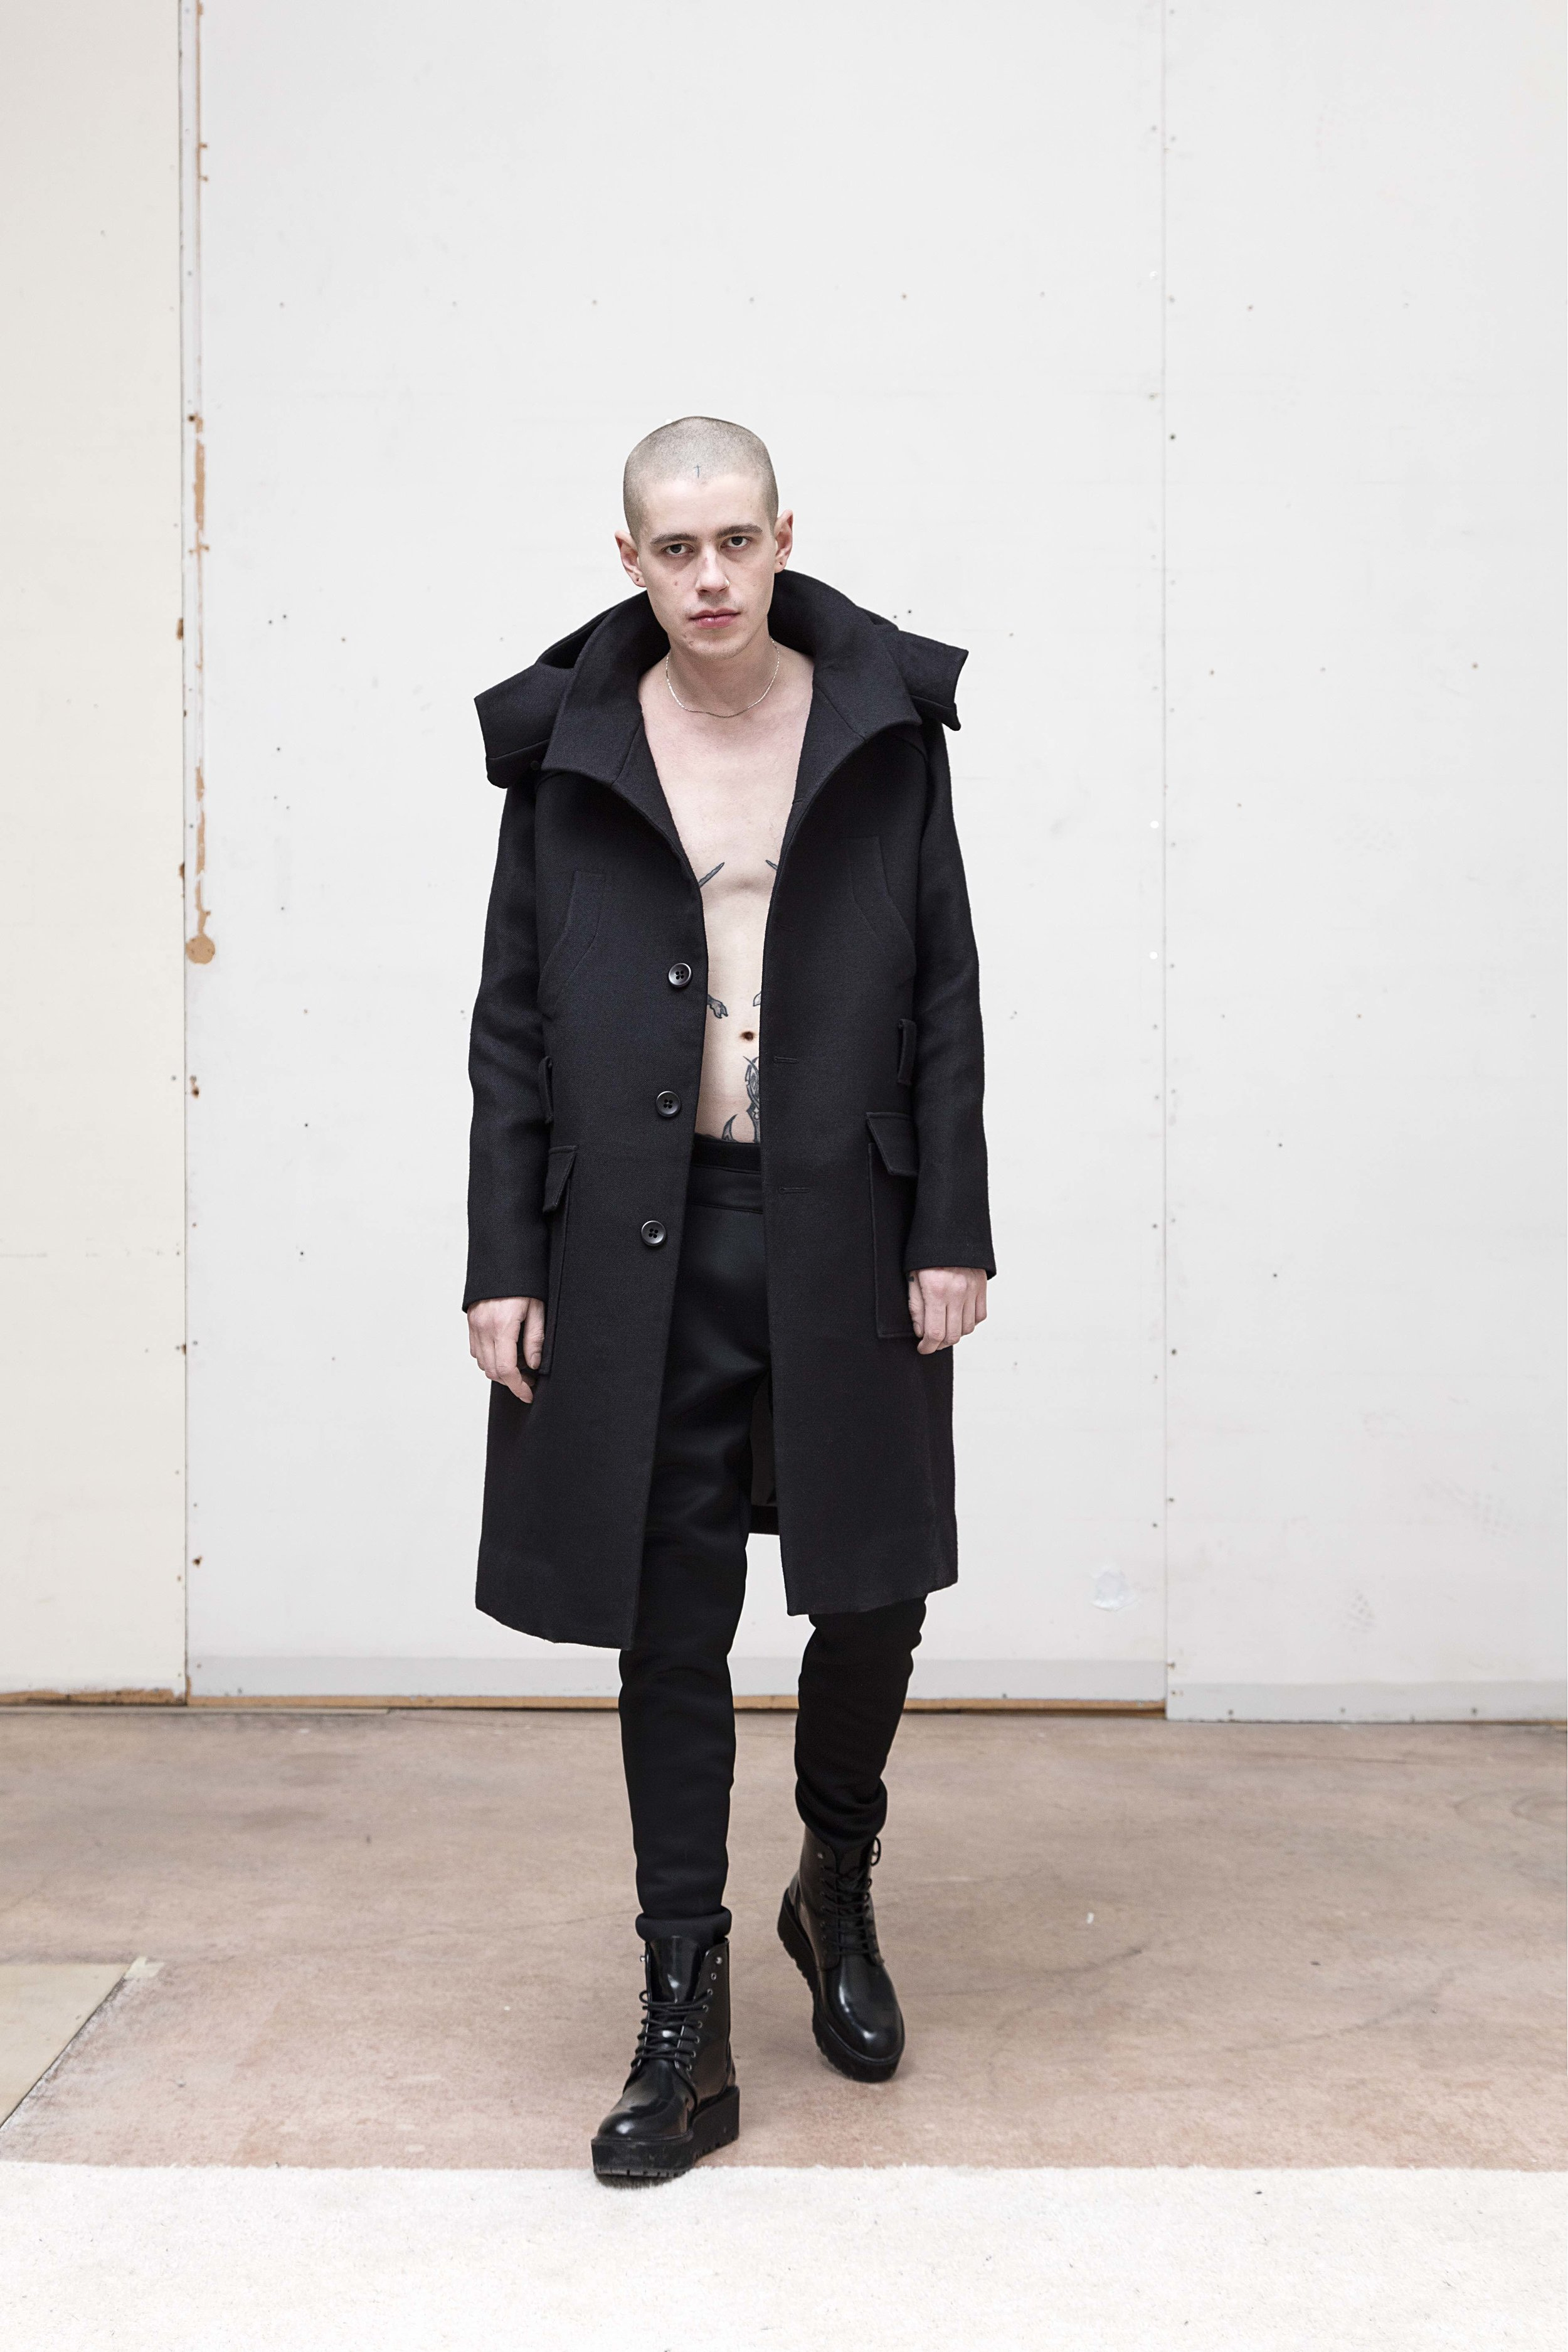 GARNISON_lookBook_FW17-1806_LOOK8.jpg